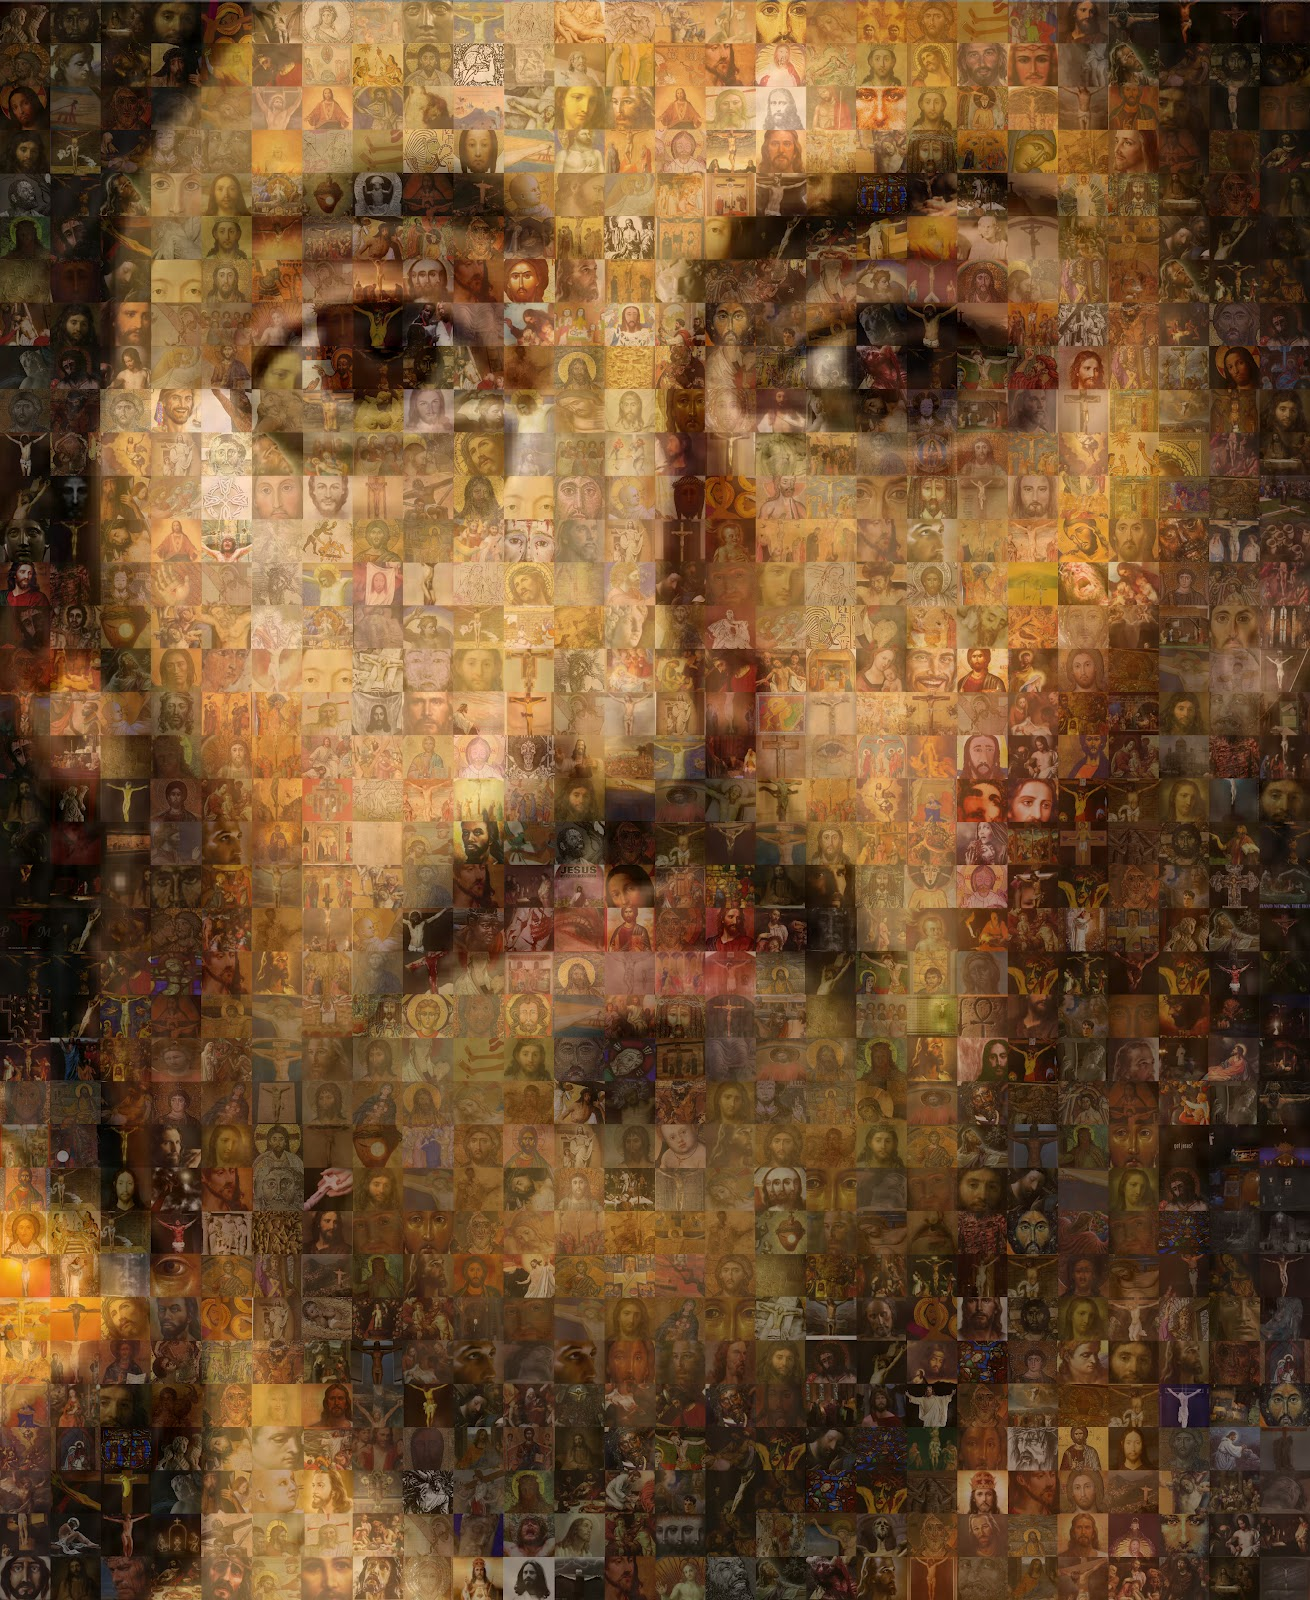 believe christ christology essay in jesus we And the word became flesh and dwelt among us, and we have seen his glory,  muslims believe jesus  from jesus to christ:.